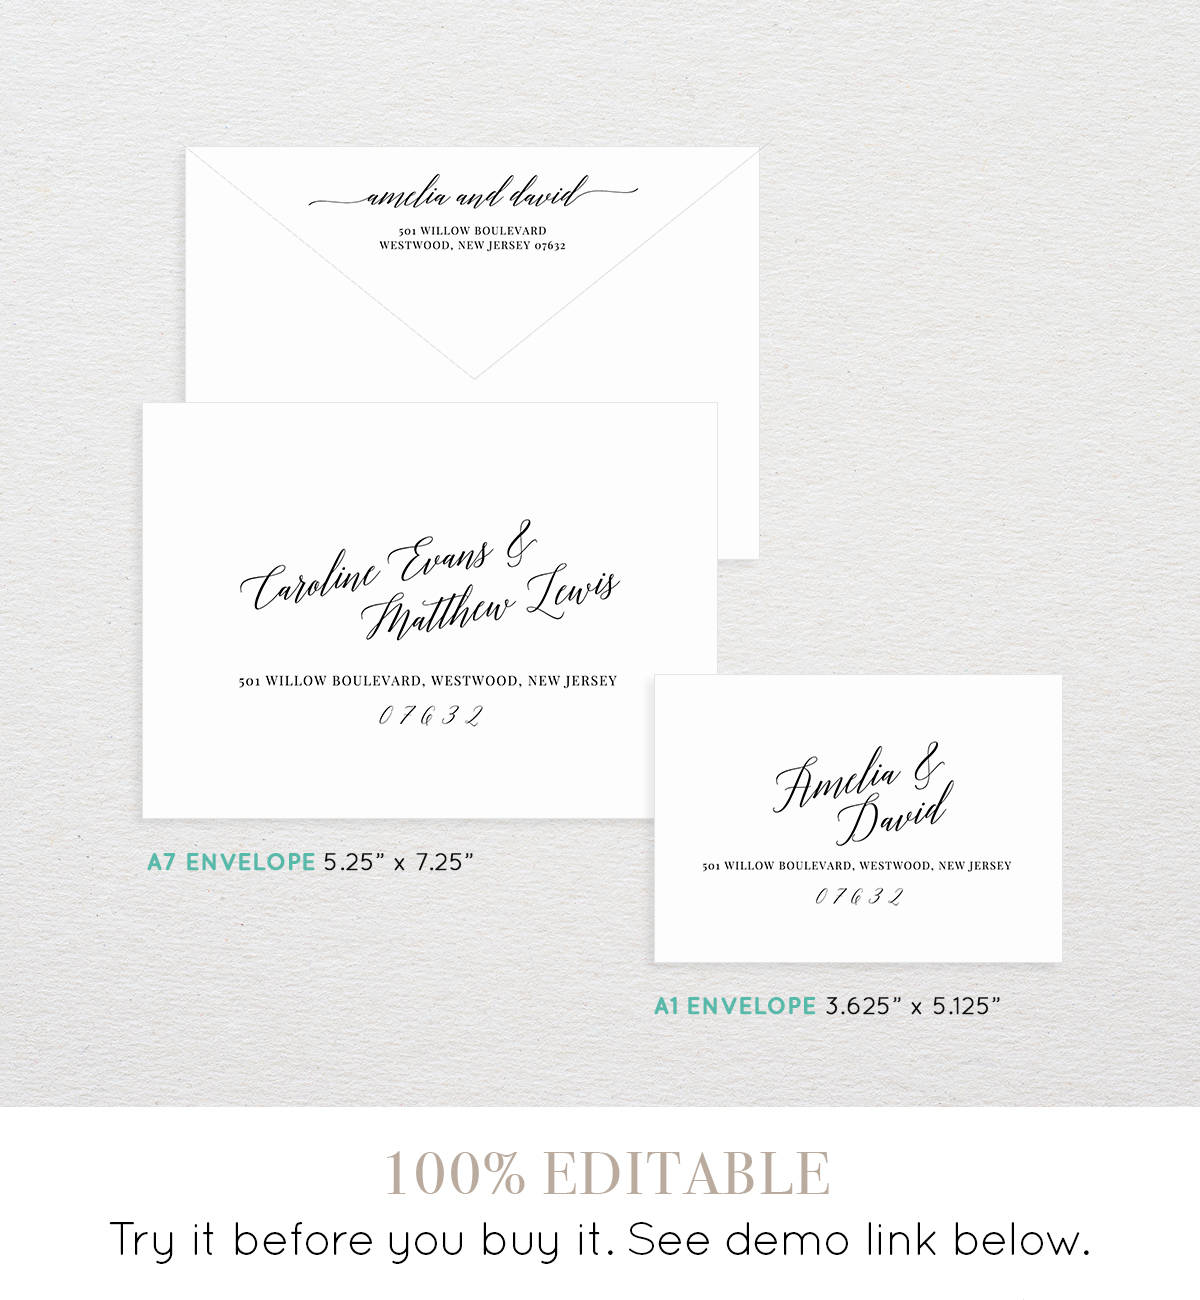 calligraphy envelope printable envelope template - 28 images ...